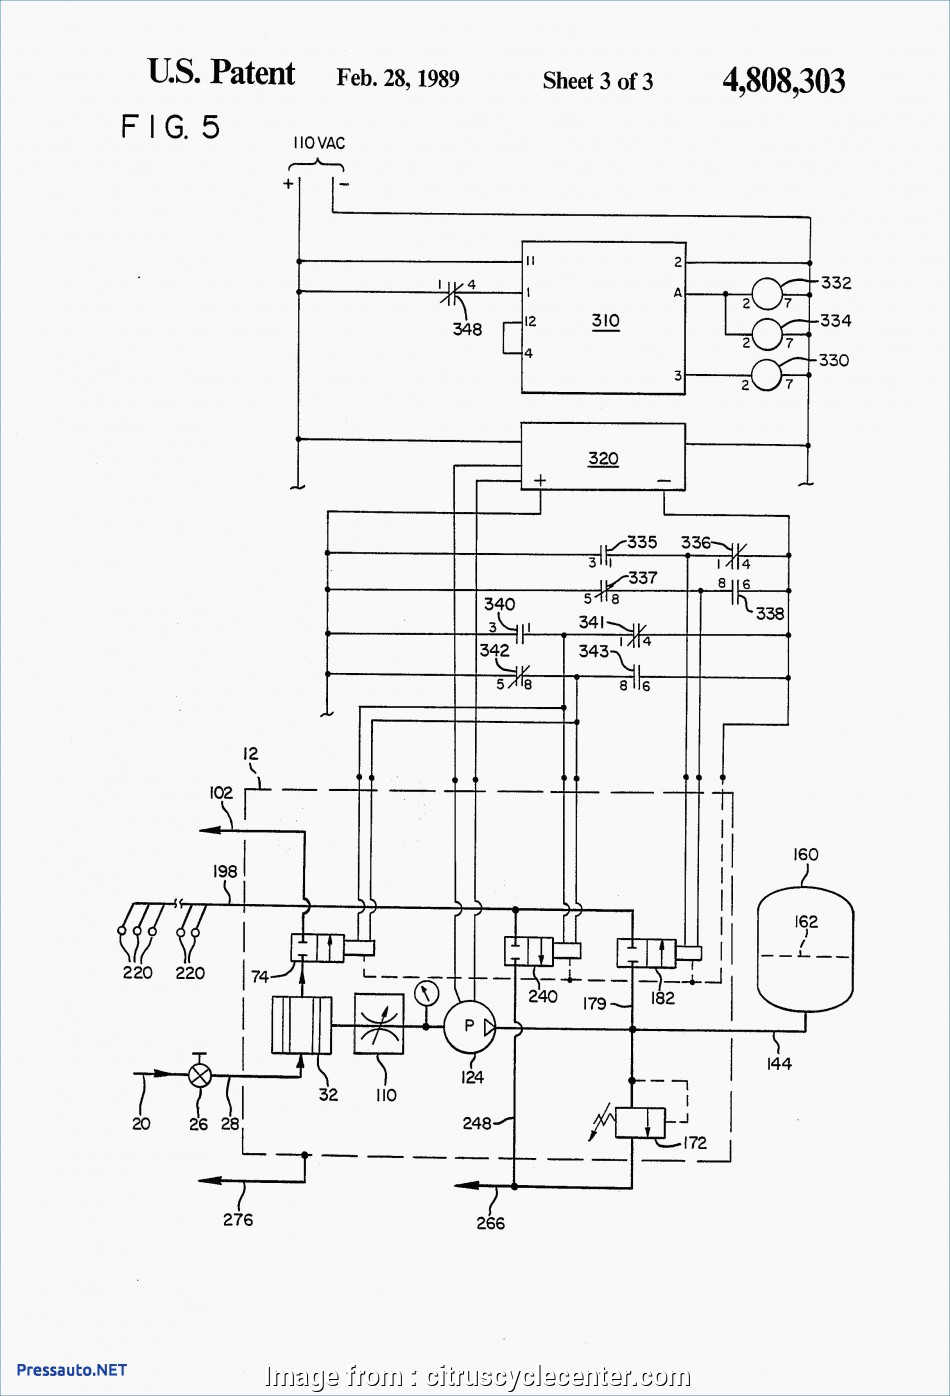 hayward super pump 1.5 hp wiring diagram Hayward Super Pump, Hp Wiring Diagram Fresh Hayward Super Pump, Hp Wiring Diagram Hayward Super Pump, Hp Wiring Diagram Cleaver Hayward Super Pump, Hp Wiring Diagram Fresh Hayward Super Pump, Hp Wiring Diagram Collections